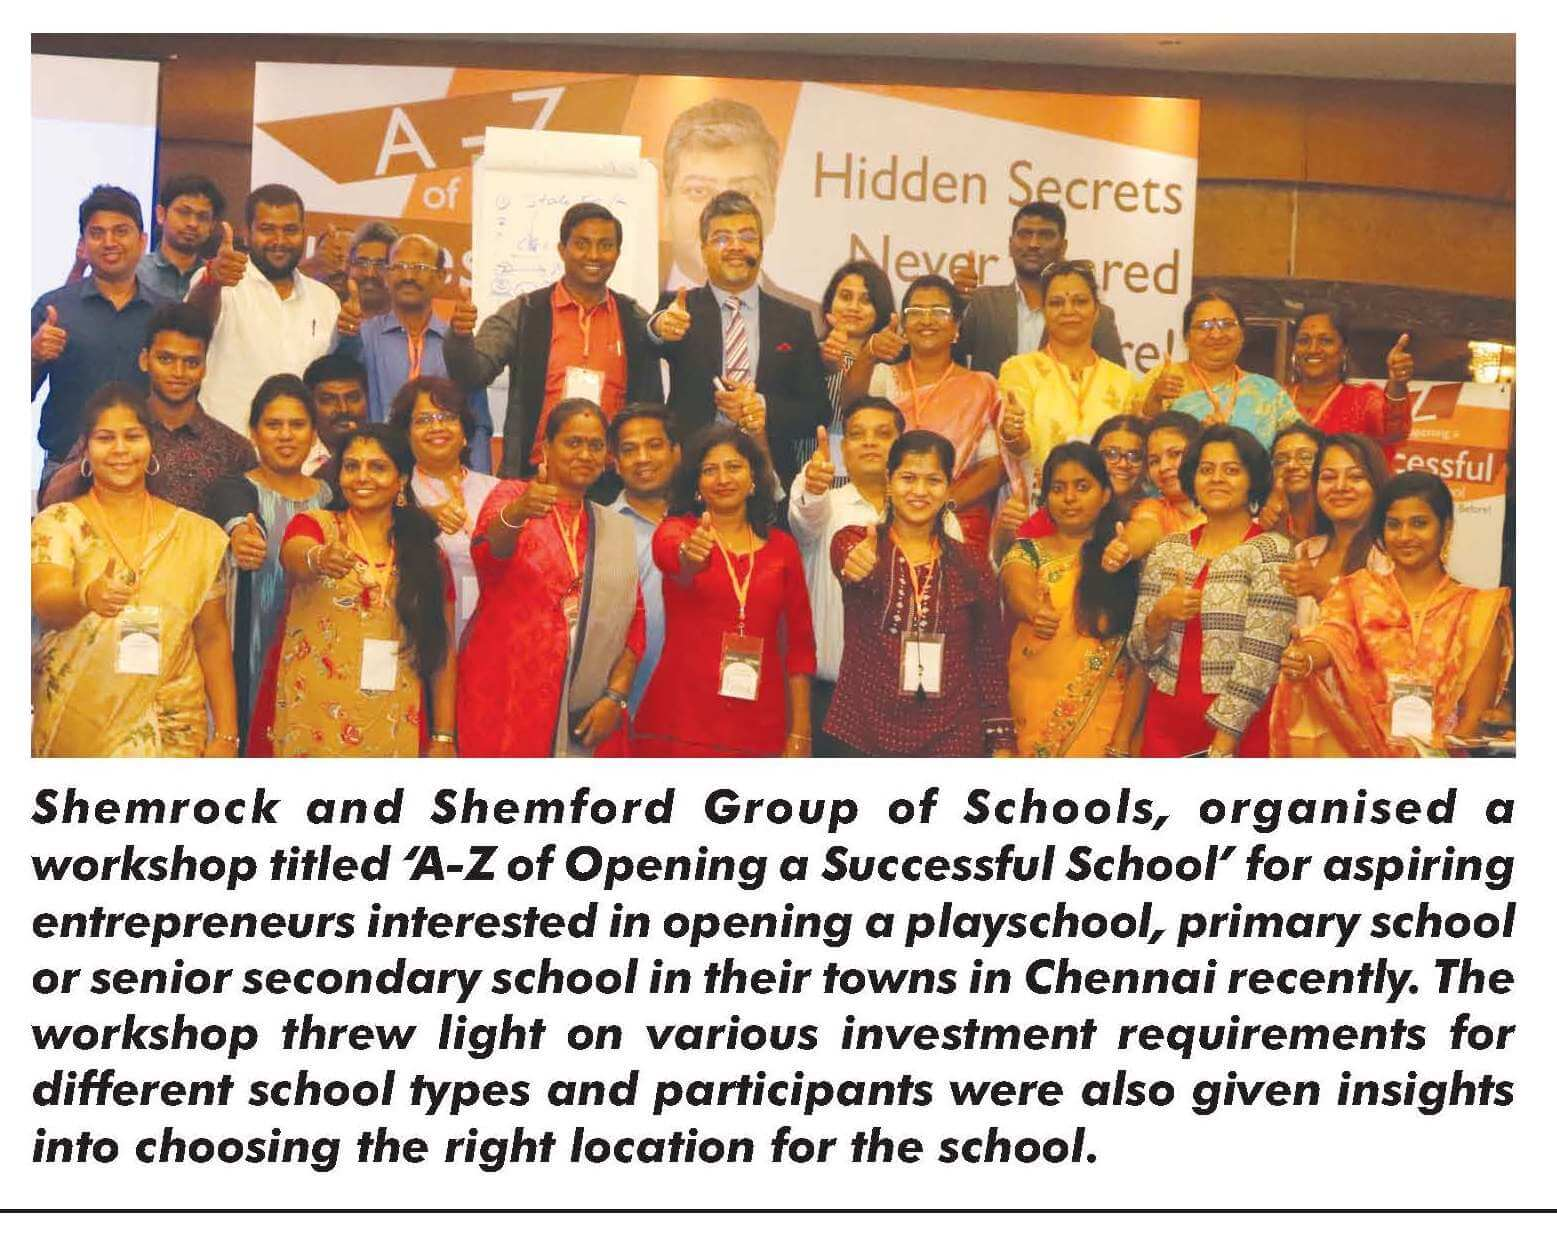 Shemrock and shemford group of schools Workshop in chennai